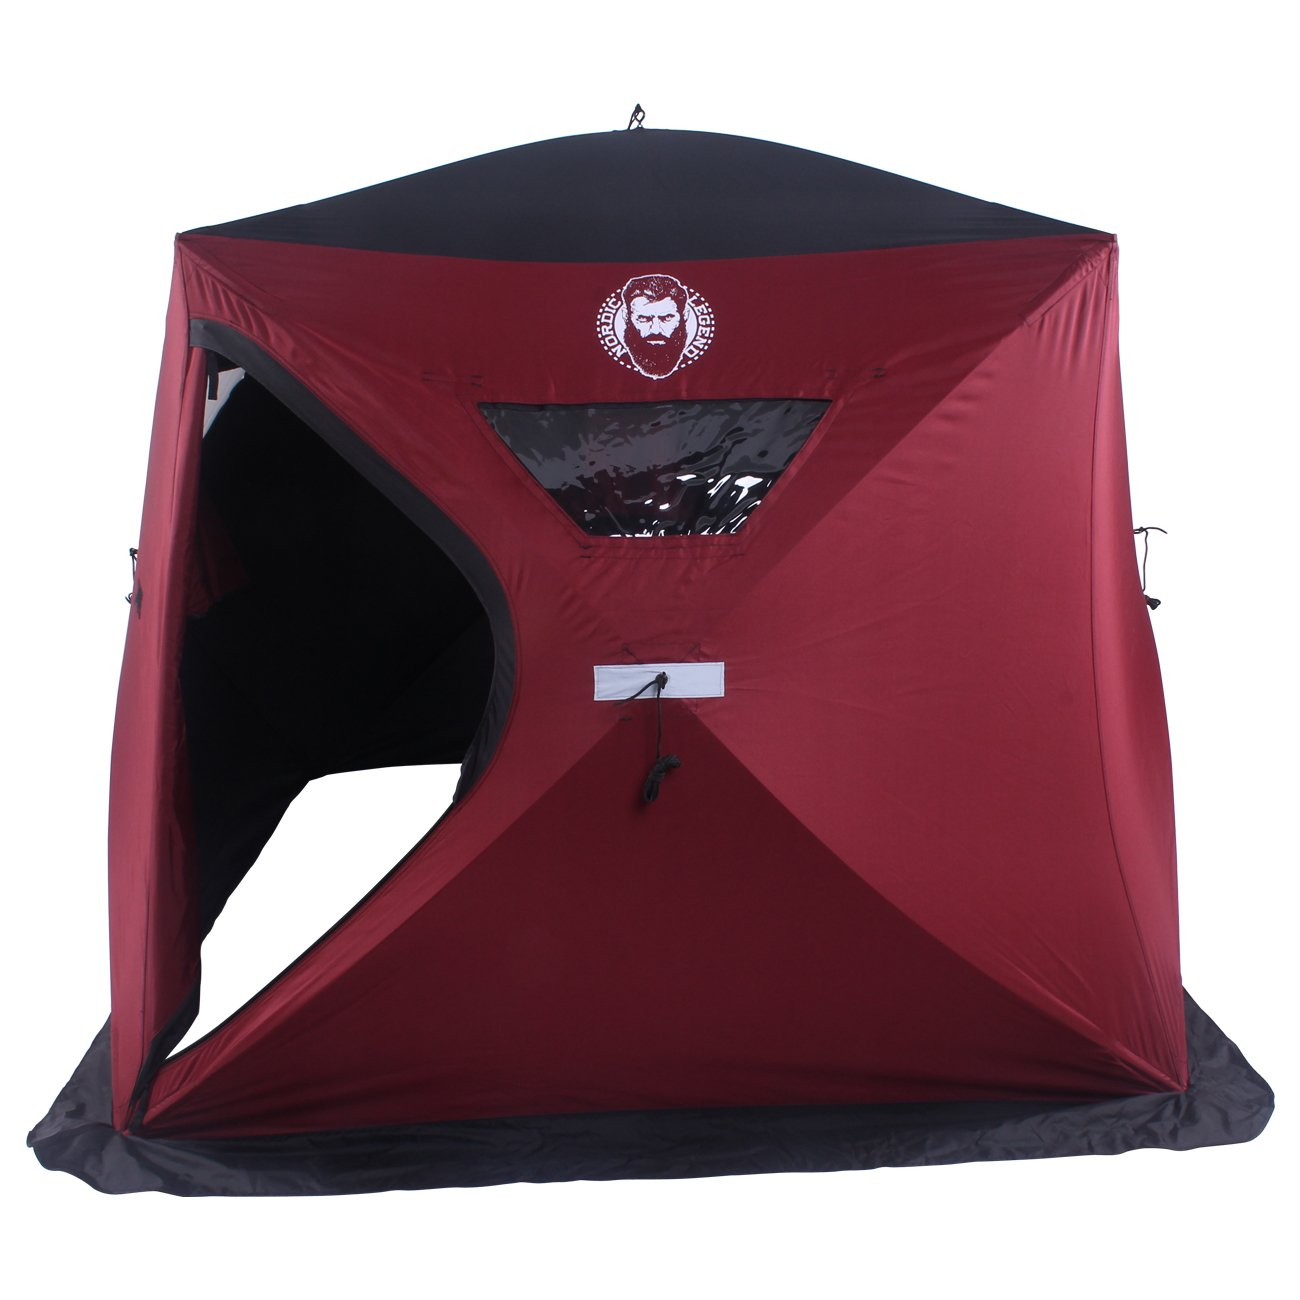 Nordic Legend 3 Man Wide Bottom Ice Shelter by Nordic Legend